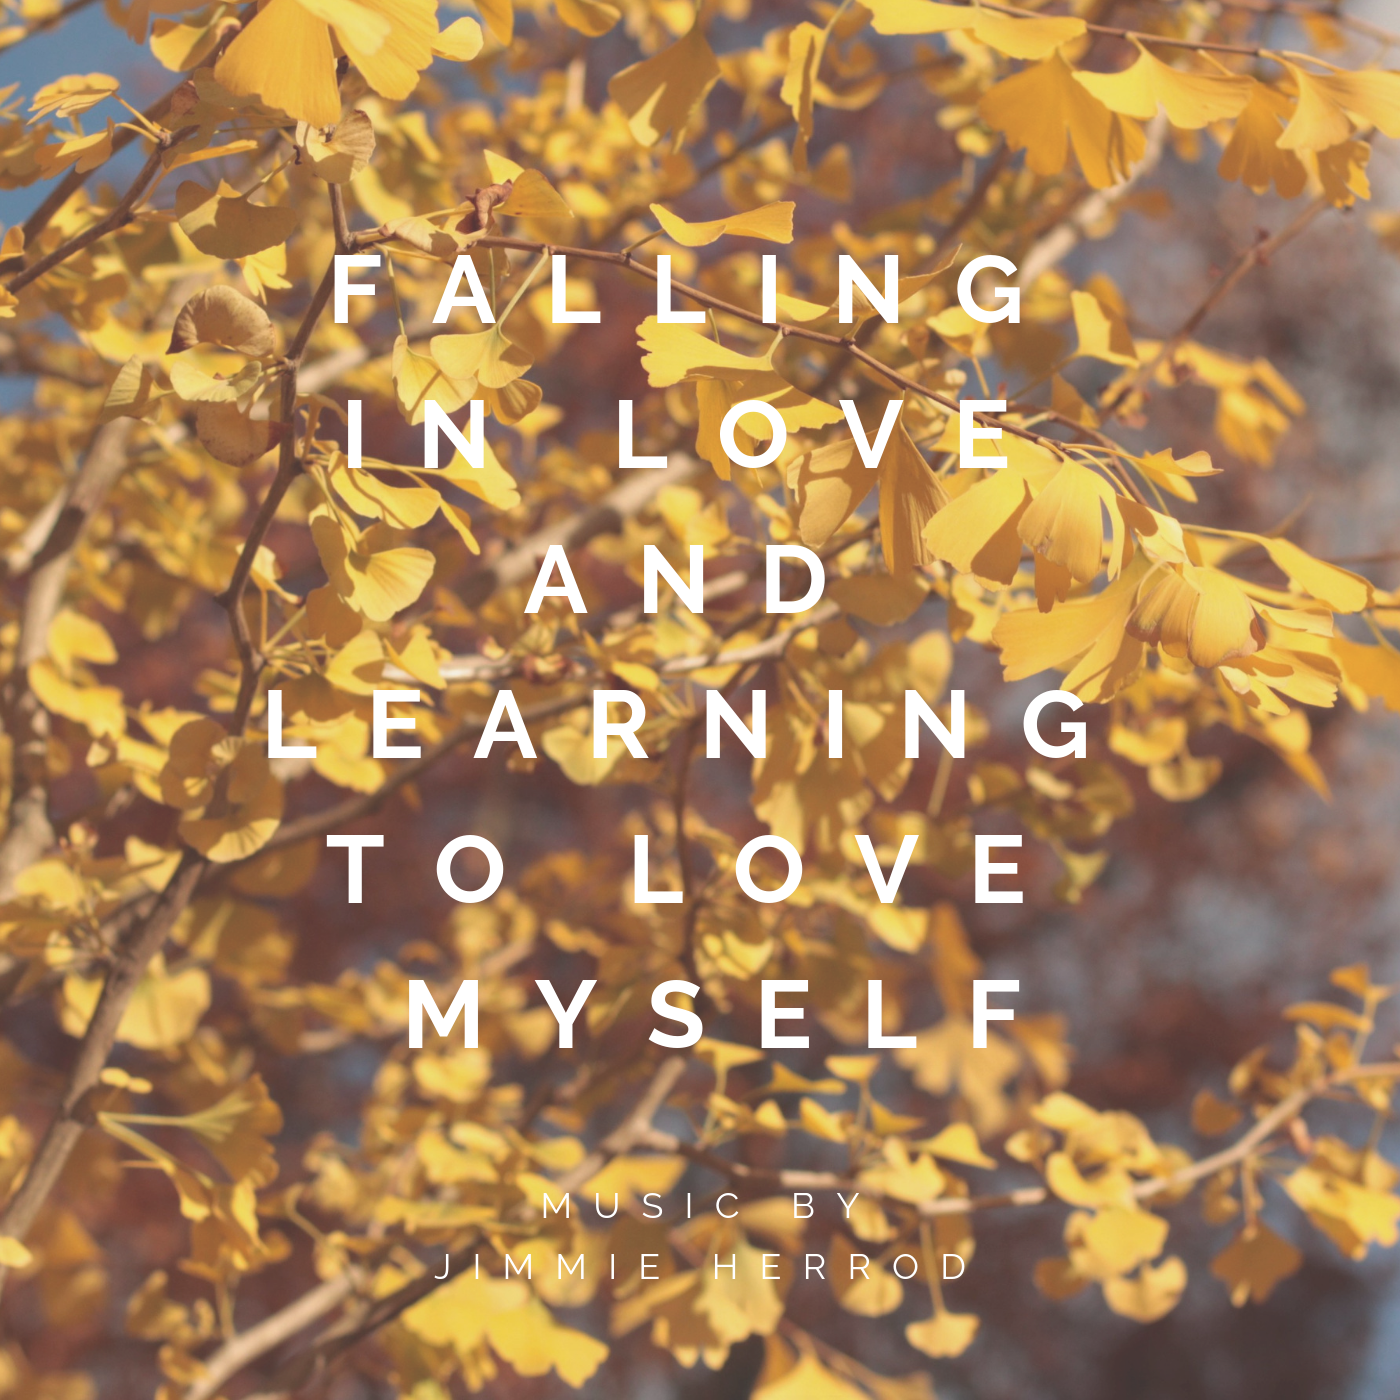 Falling In Love and Learning to Love Myself